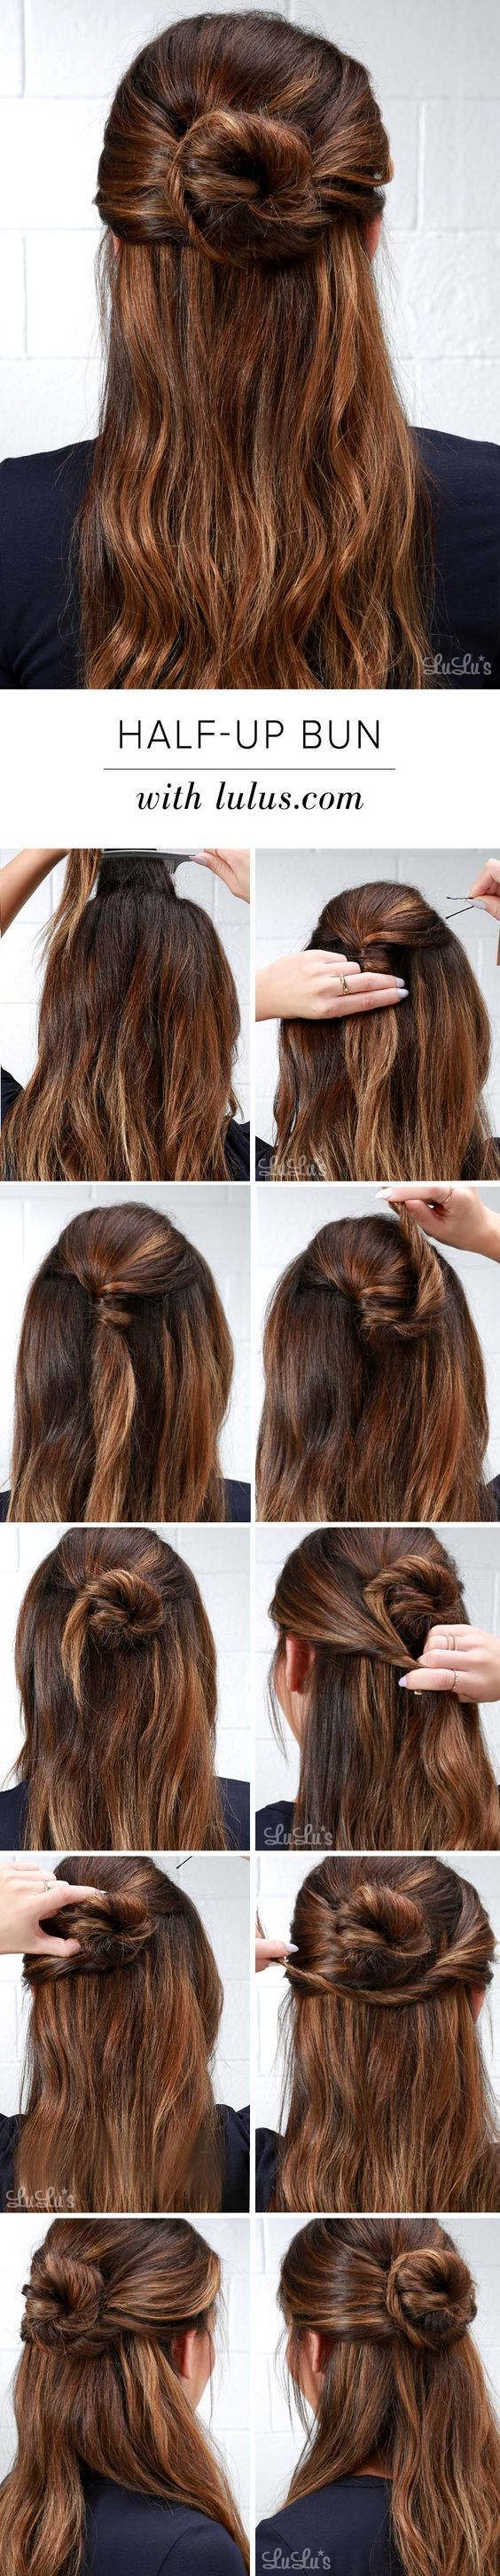 Simple Easy Step by step half up bun updo